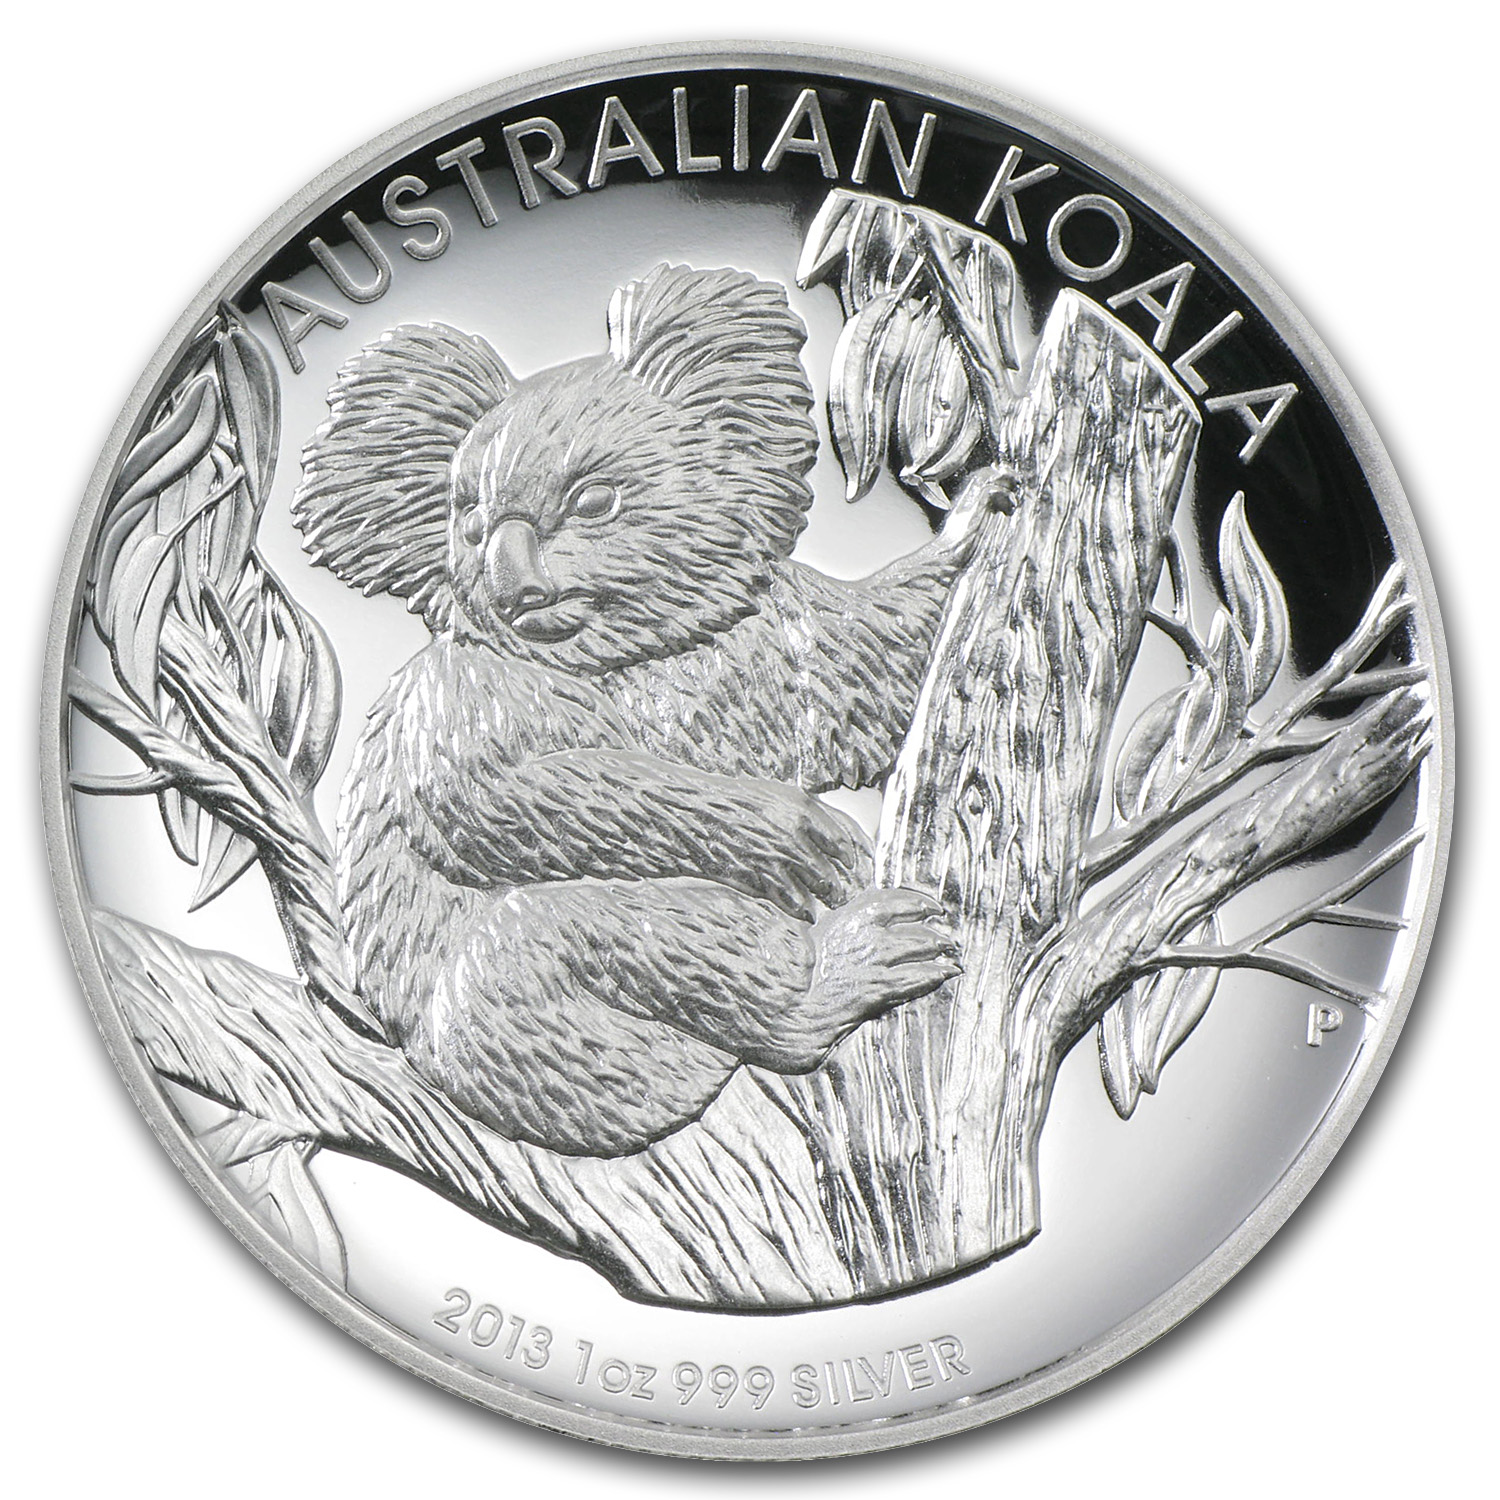 2013 Australia 1 oz Silver Koala Proof (High Relief, w/Box & COA)